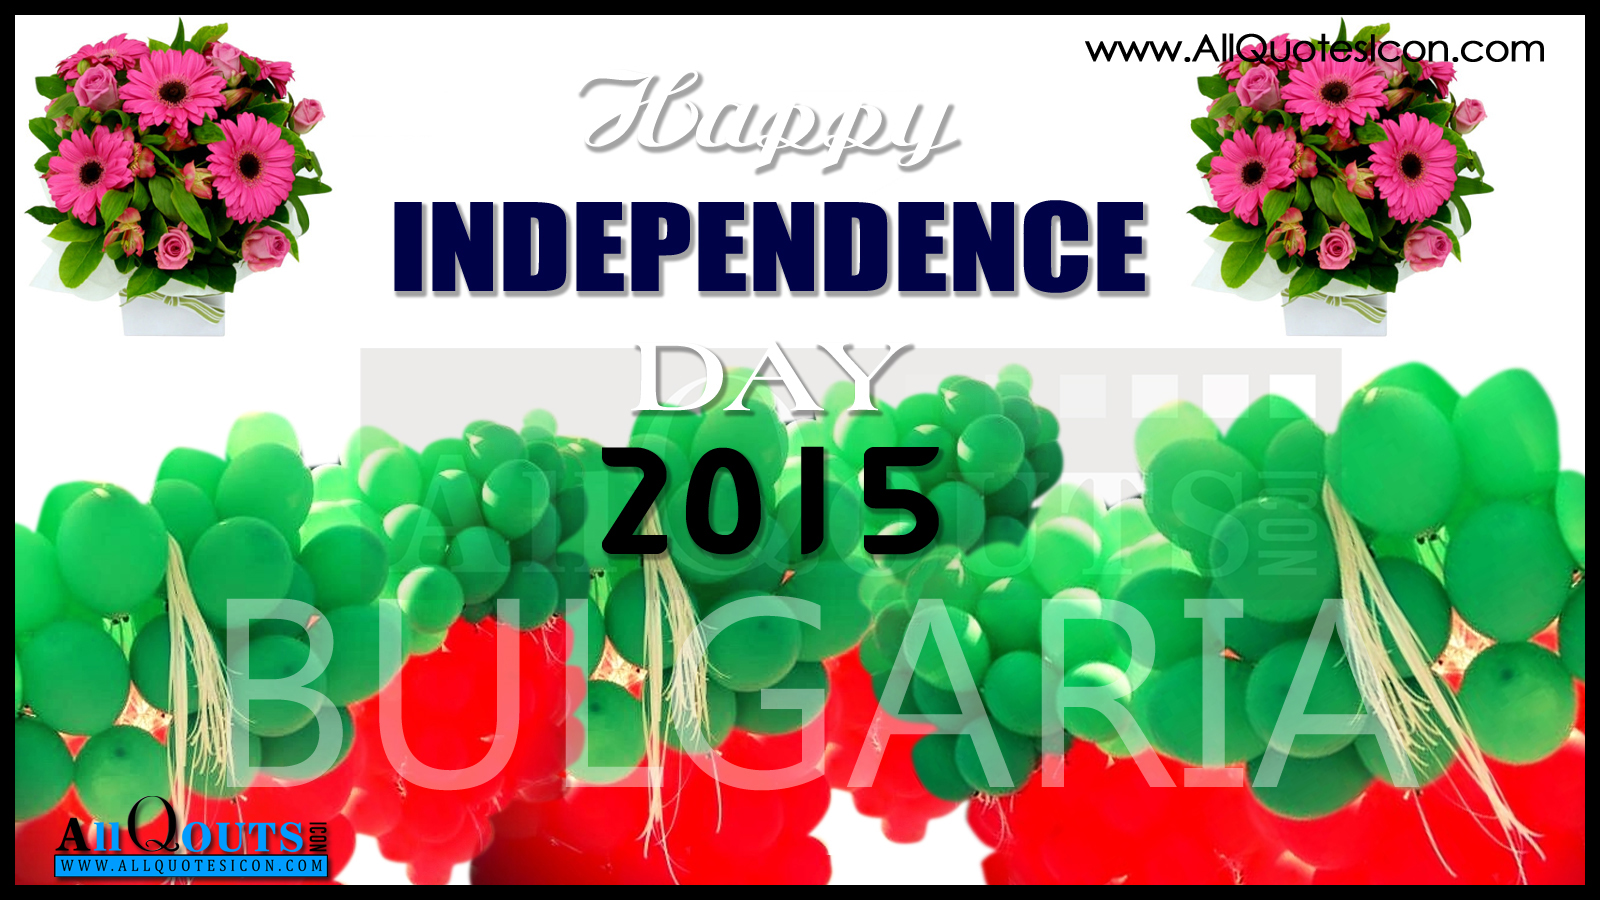 Bulgaria Happy Independence Day Wishes And Pictures Www Happy Birthday Wishes In Bulgarian